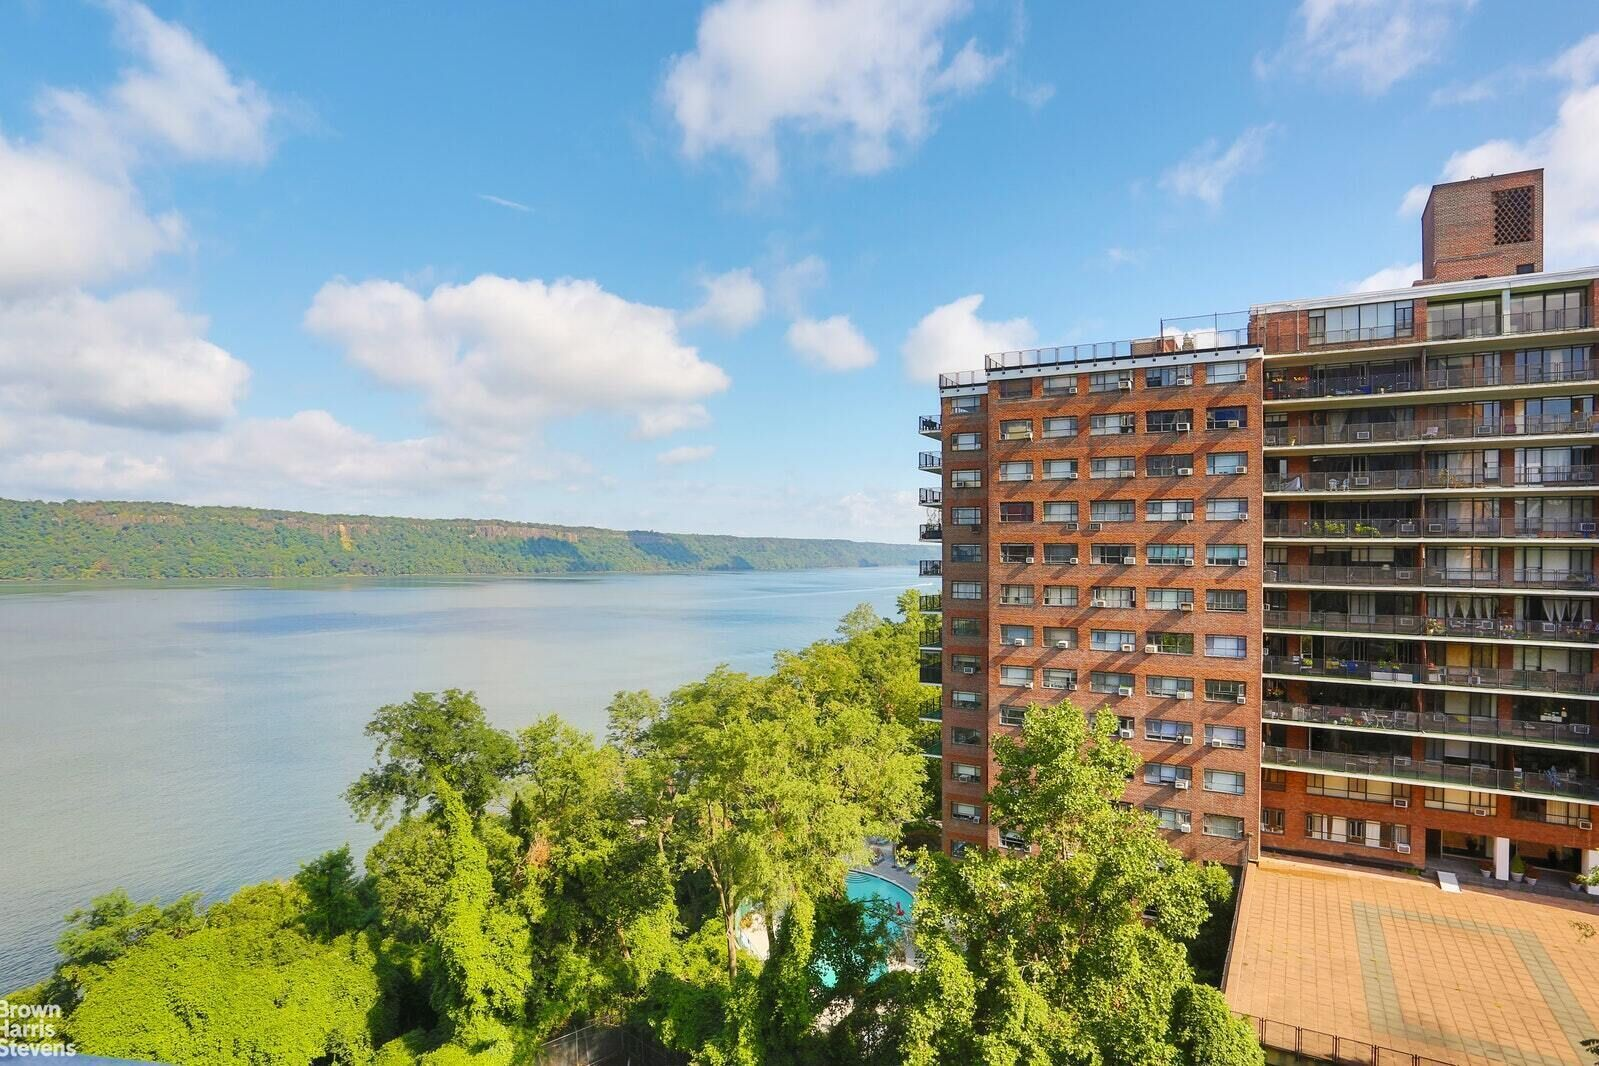 Apartment for sale at 2621 Palisade Avenue, Apt 7F